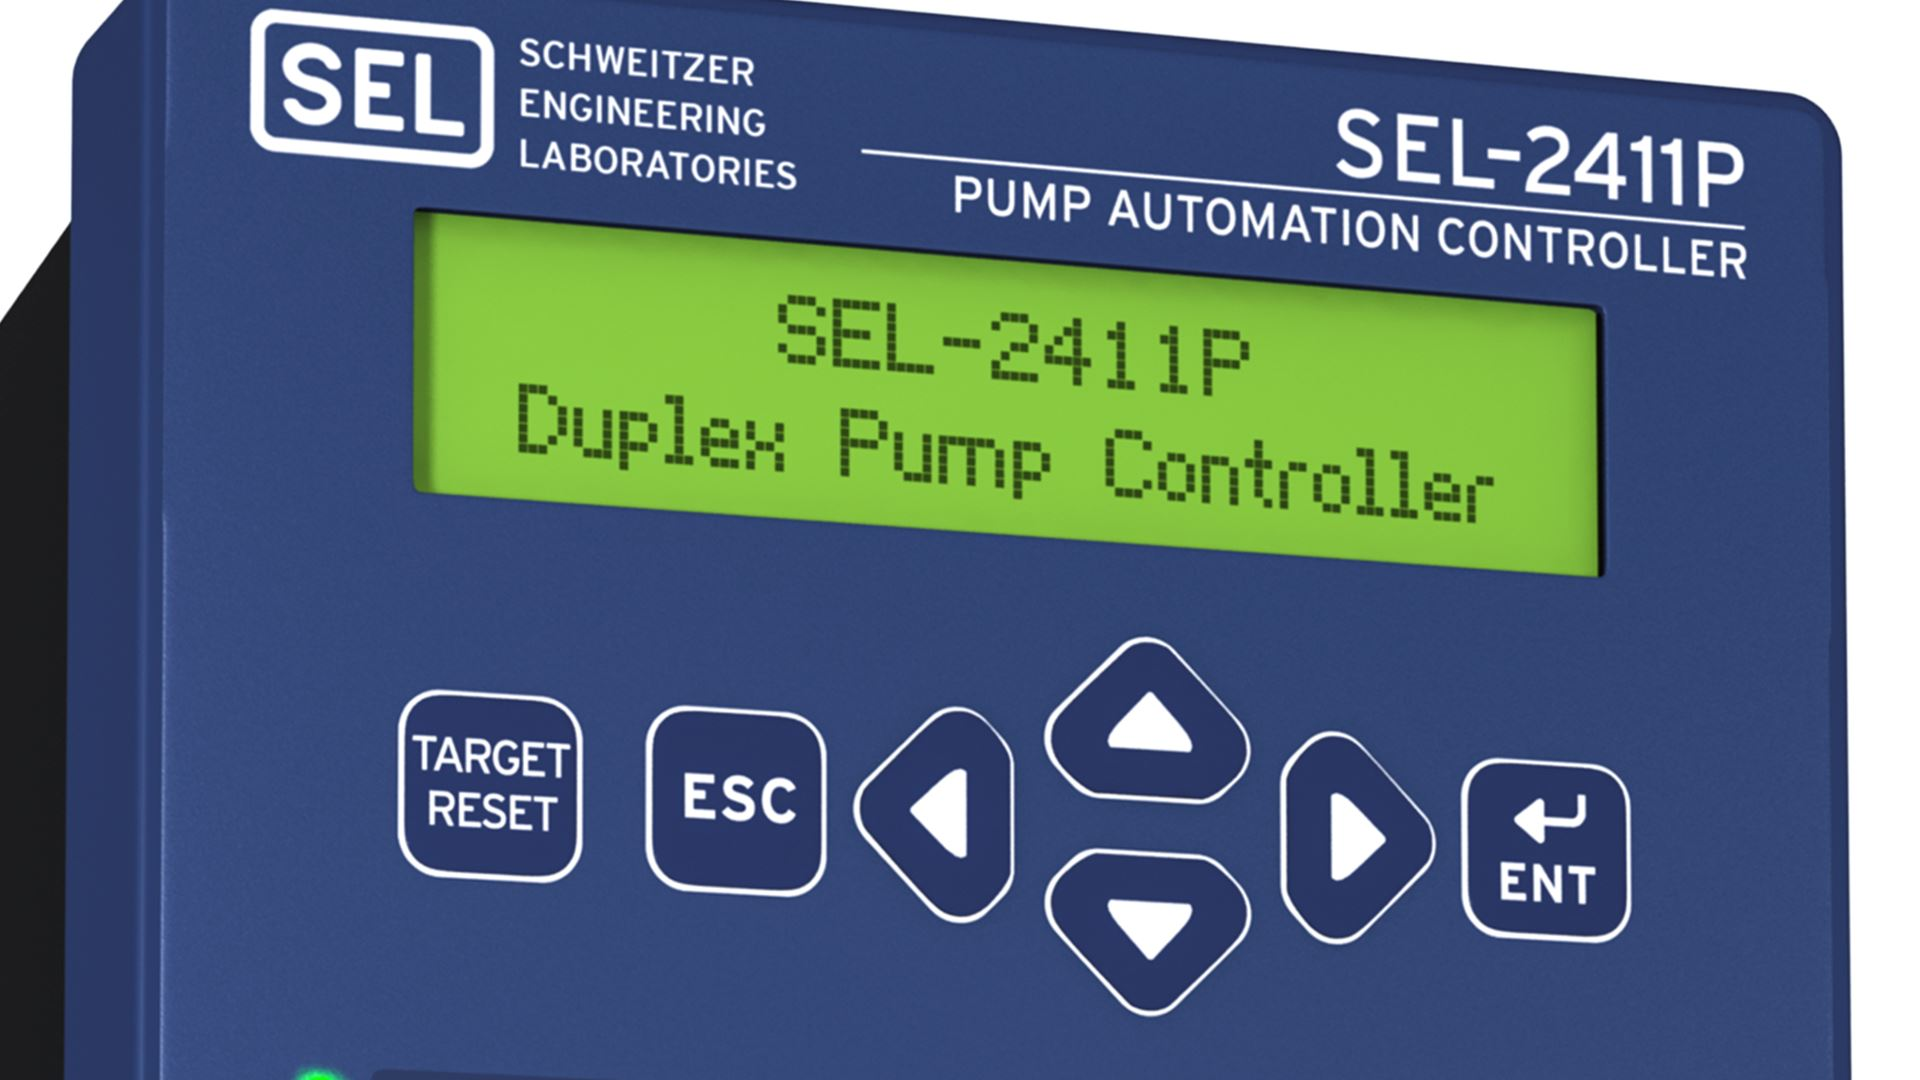 hight resolution of sel 2411p pump automation controller schweitzer engineering laboratories